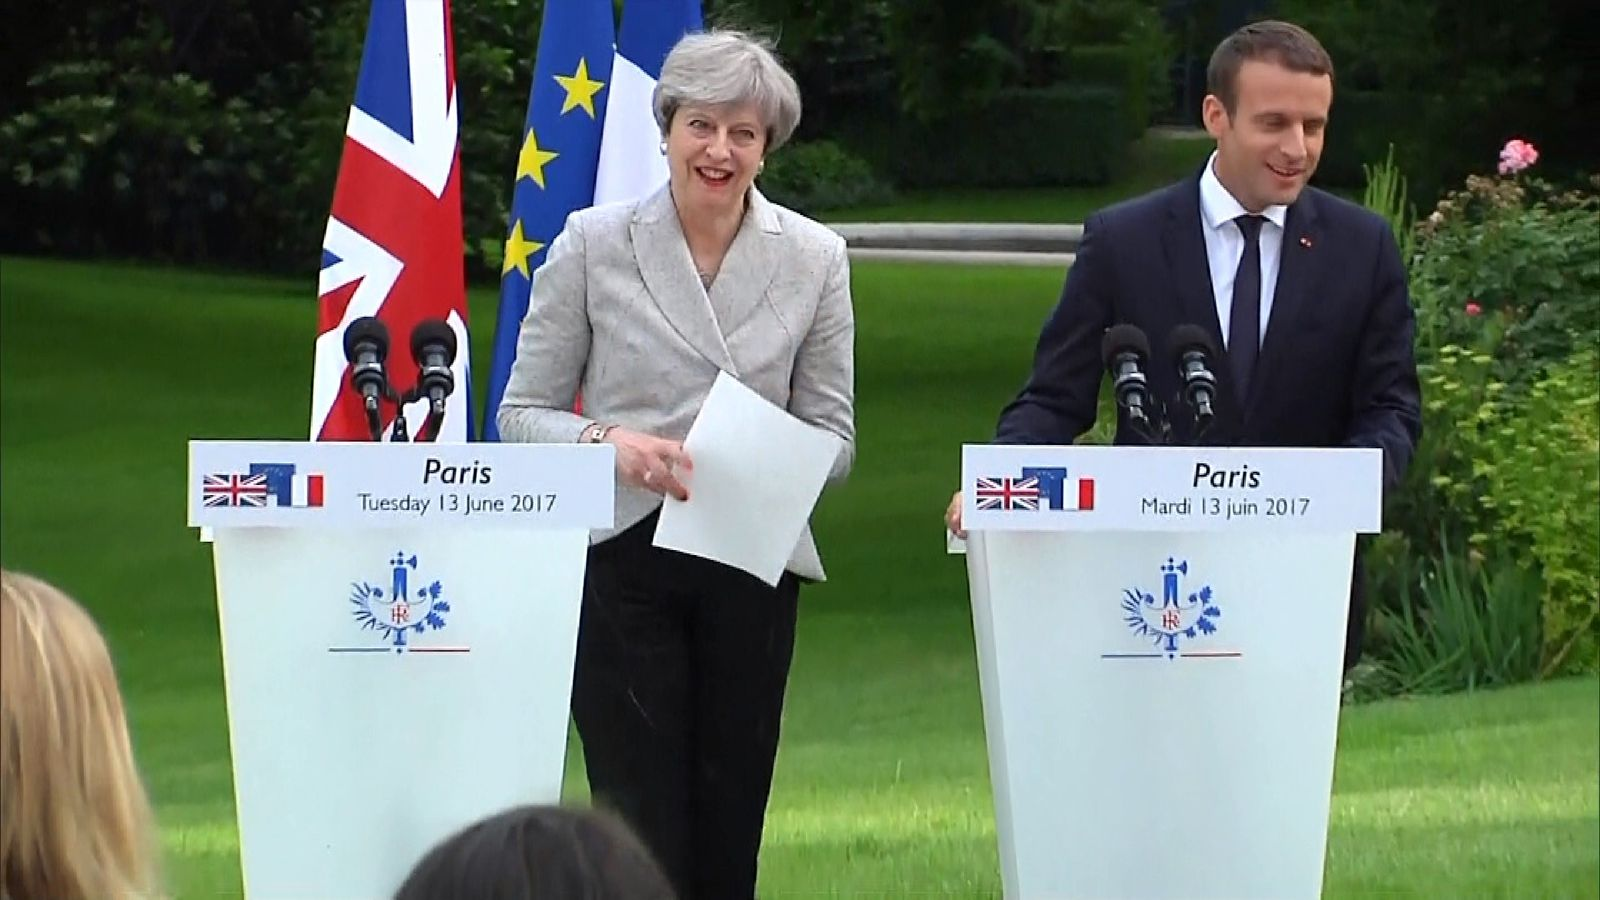 Theresa May's papers flutter away in the breeze during joint press conference with Emmanuel Macron